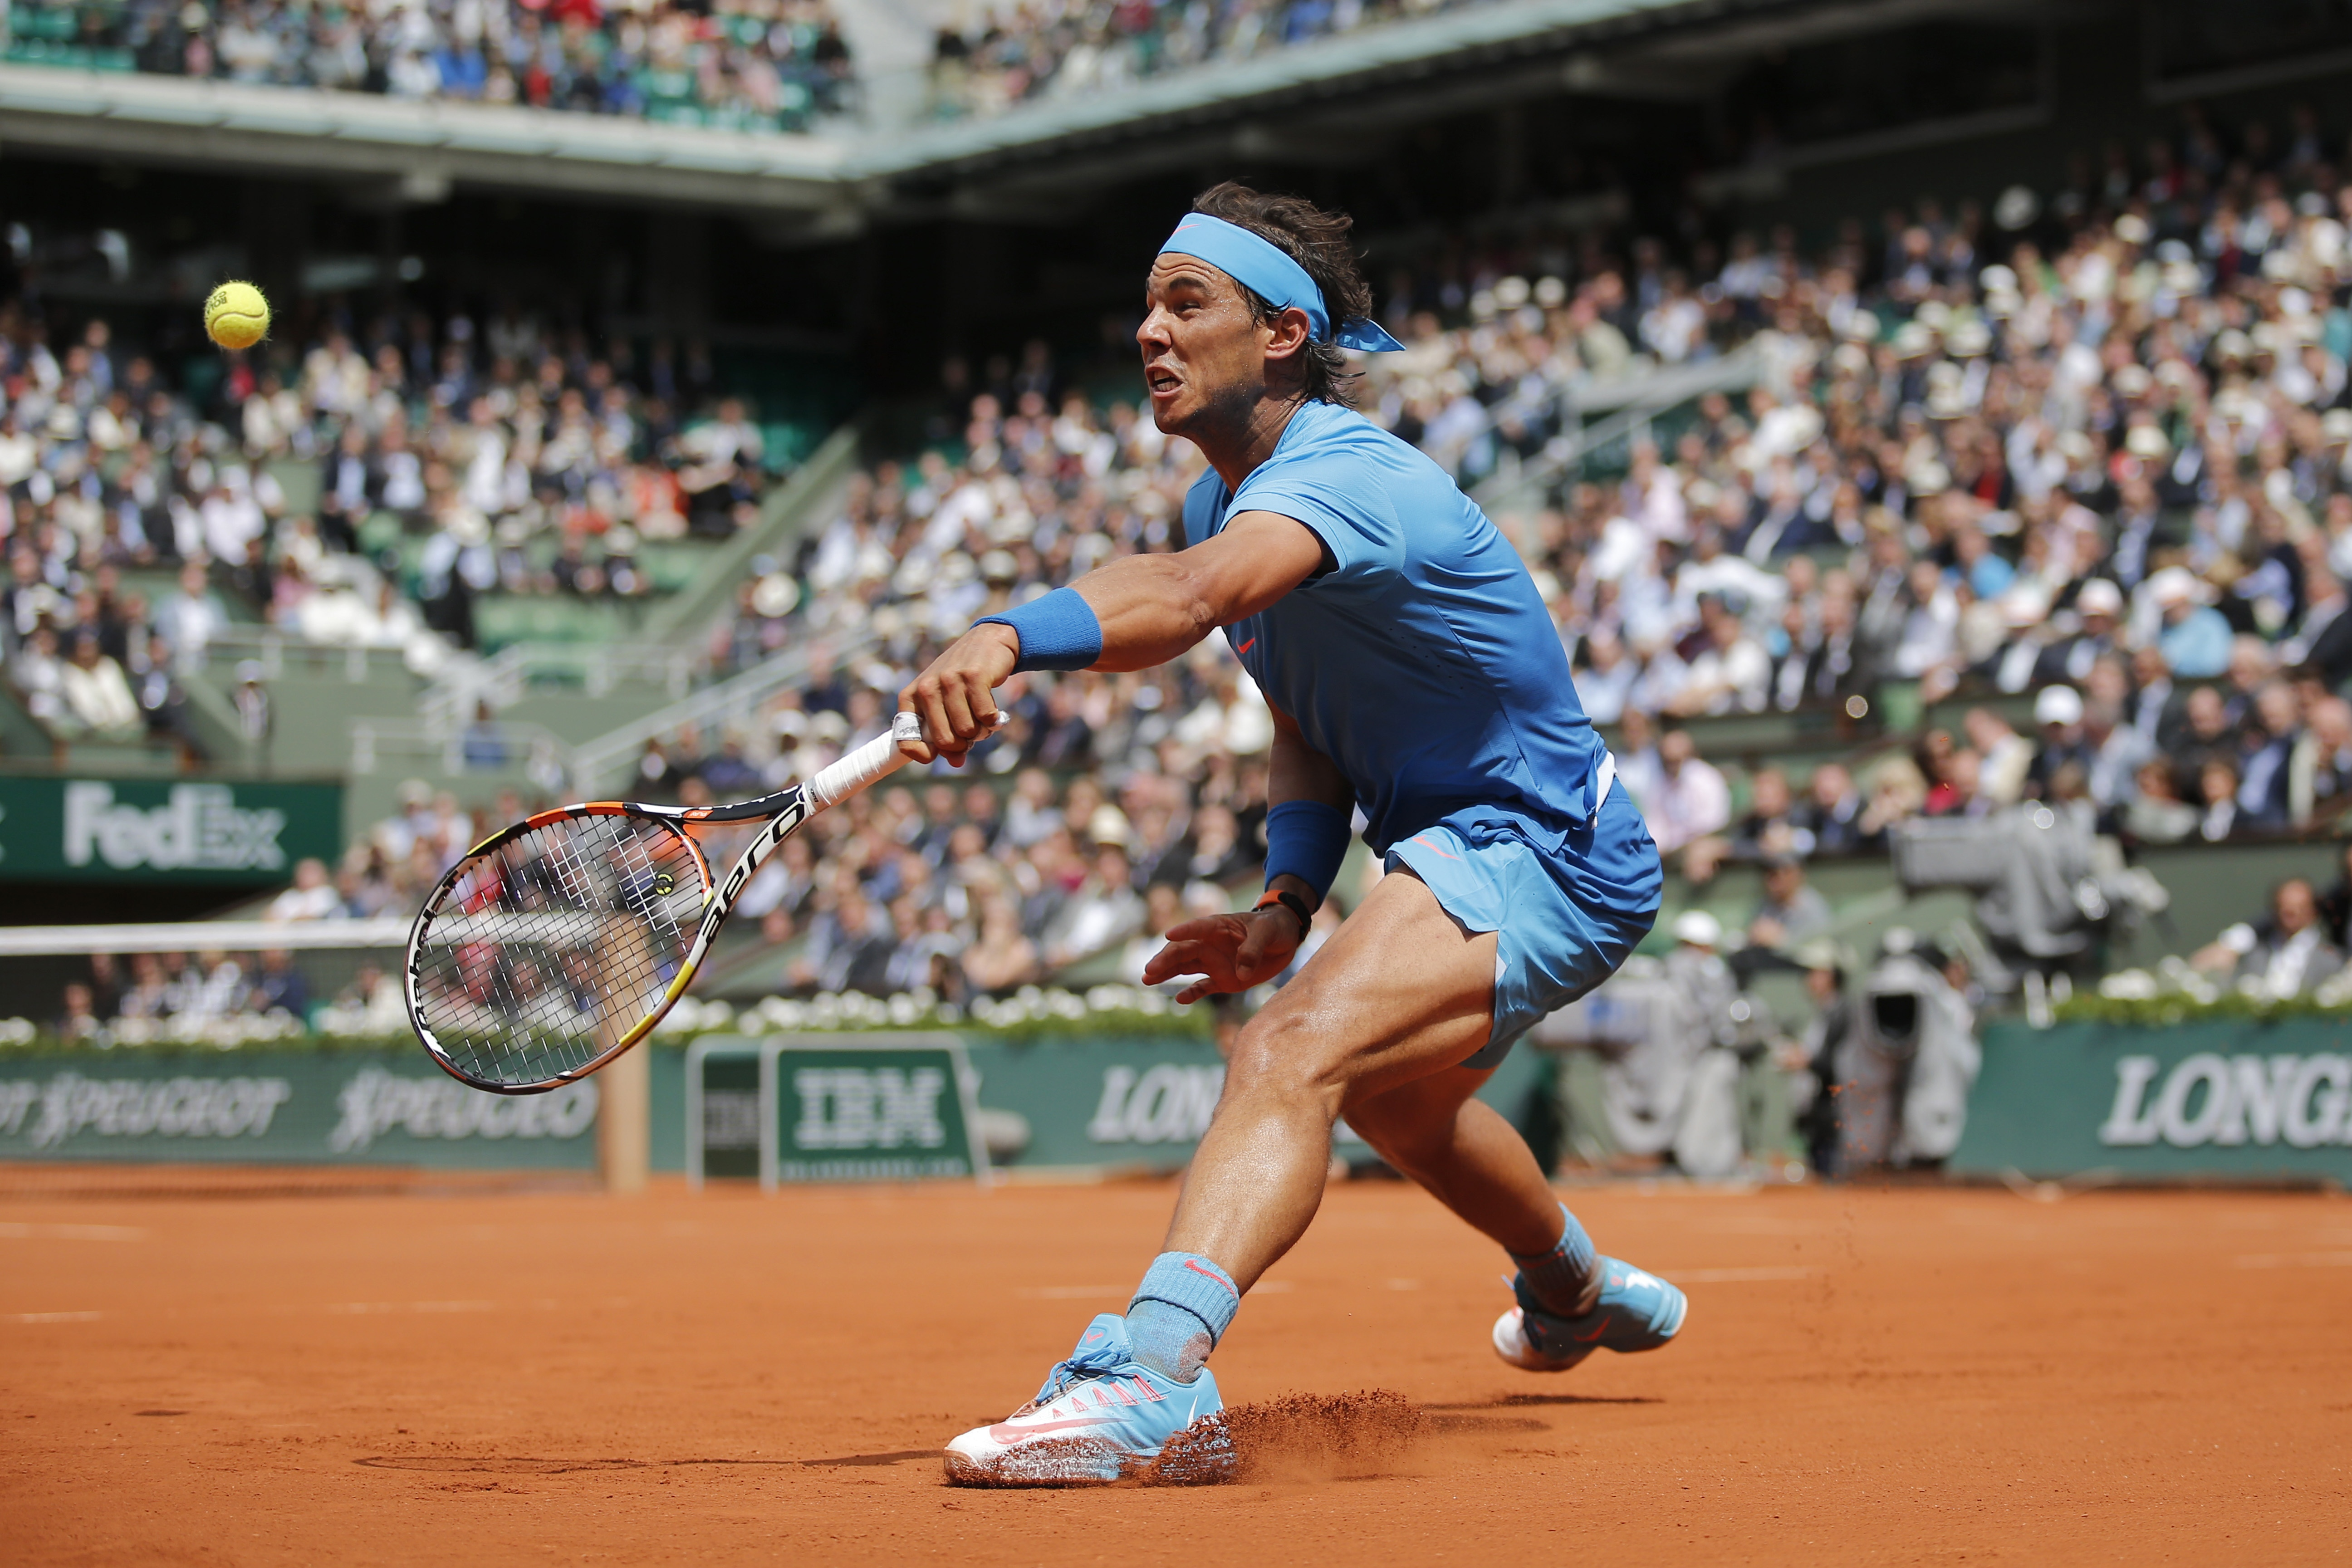 FILE - In this Thursday, May 28, 2015 filer, Spain's Rafael Nadal returns in the second round match of the French Open tennis tournament against Spain's Nicolas Almagro at the Roland Garros stadium, in Paris, France. (AP Photo/Christophe Ena, File)